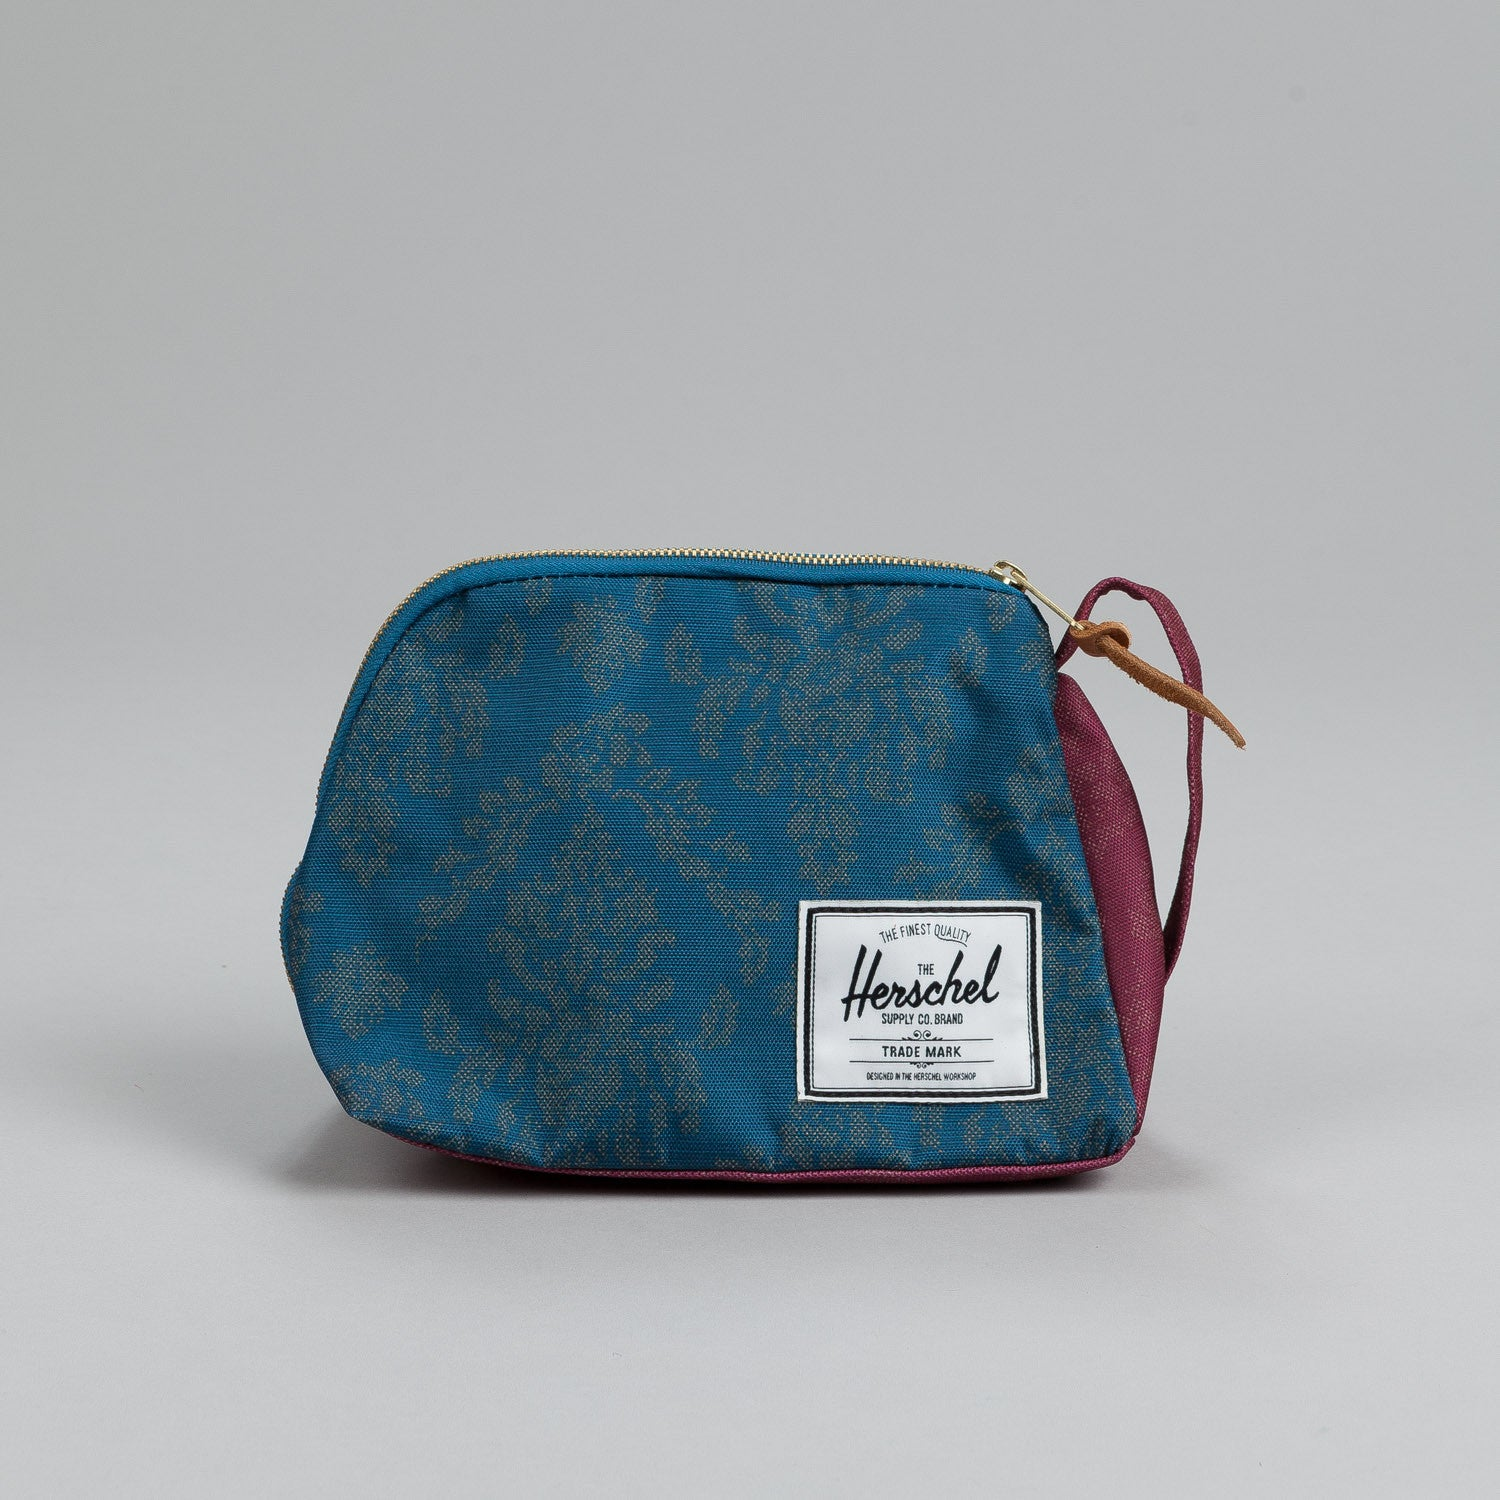 Herschel Royal Dopp Kit Blue Damask / Burgundy Damask